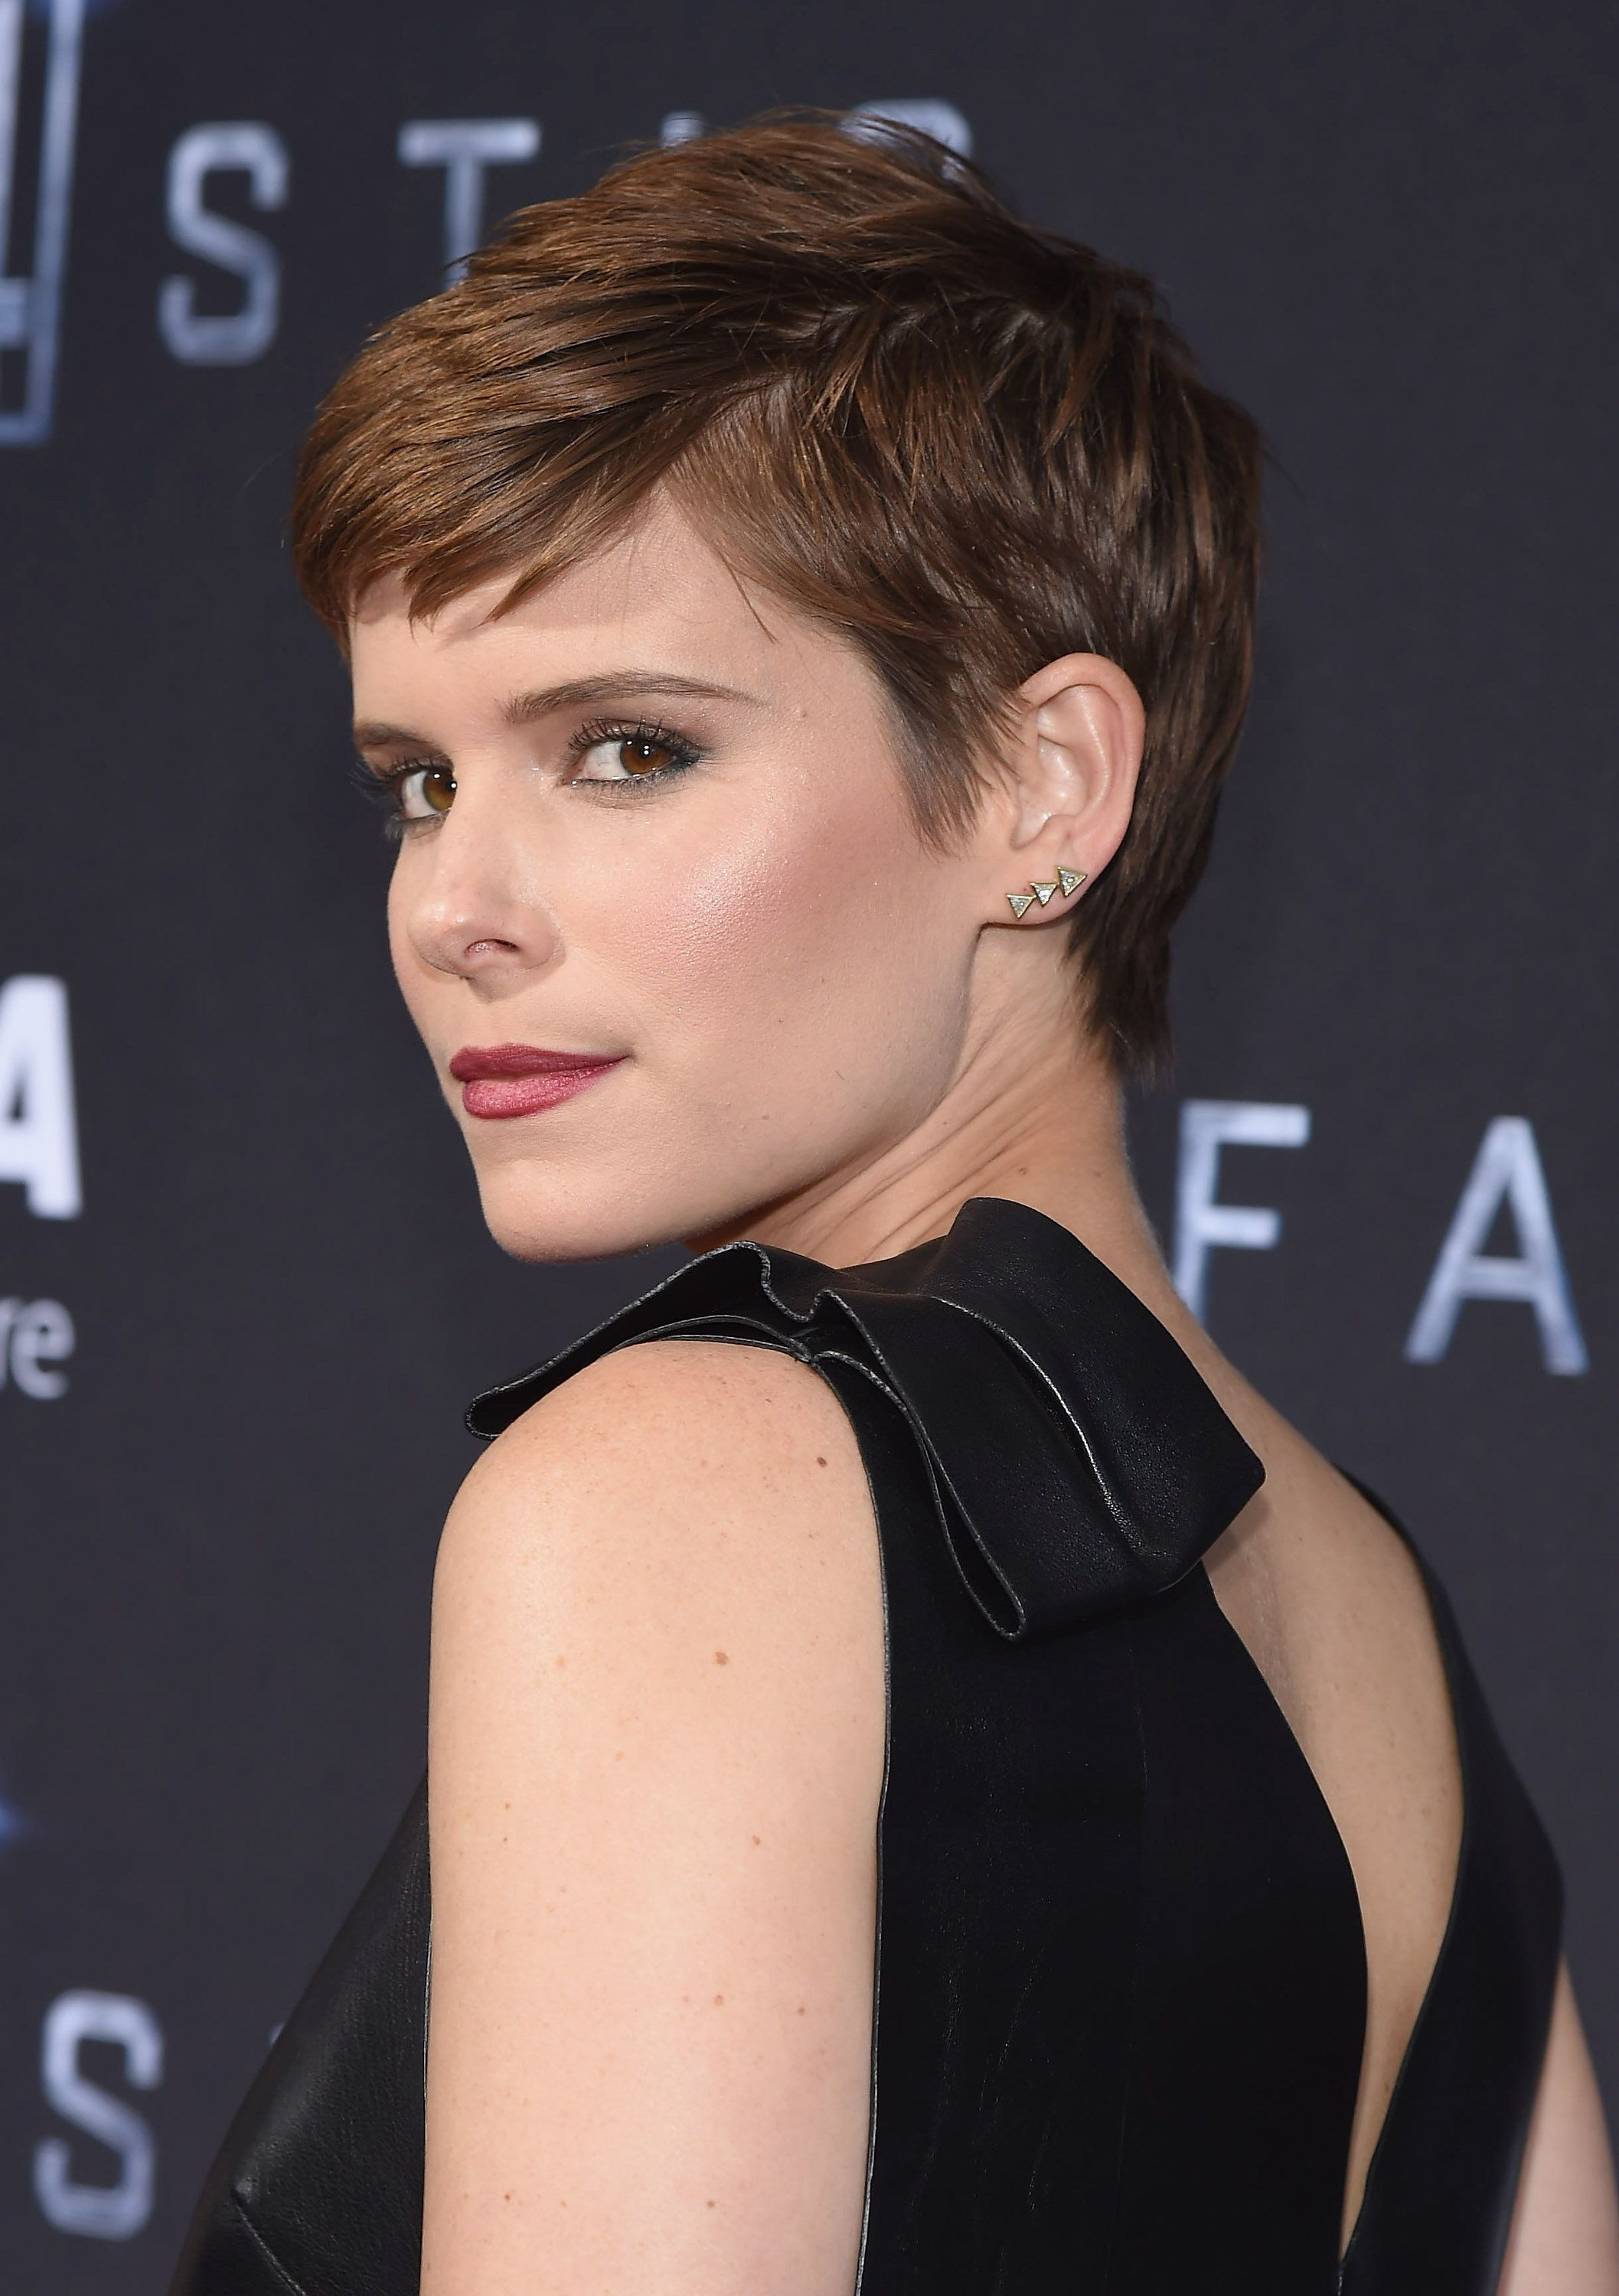 NEW YORK, NY - AUGUST 04:  Actress Kate Mara attends the 'Fantastic Four' New York Premiere - Inside Arrivals at Williamsburg Cinemas on August 4, 2015 in New York City.  (Photo by Gary Gershoff/WireImage)